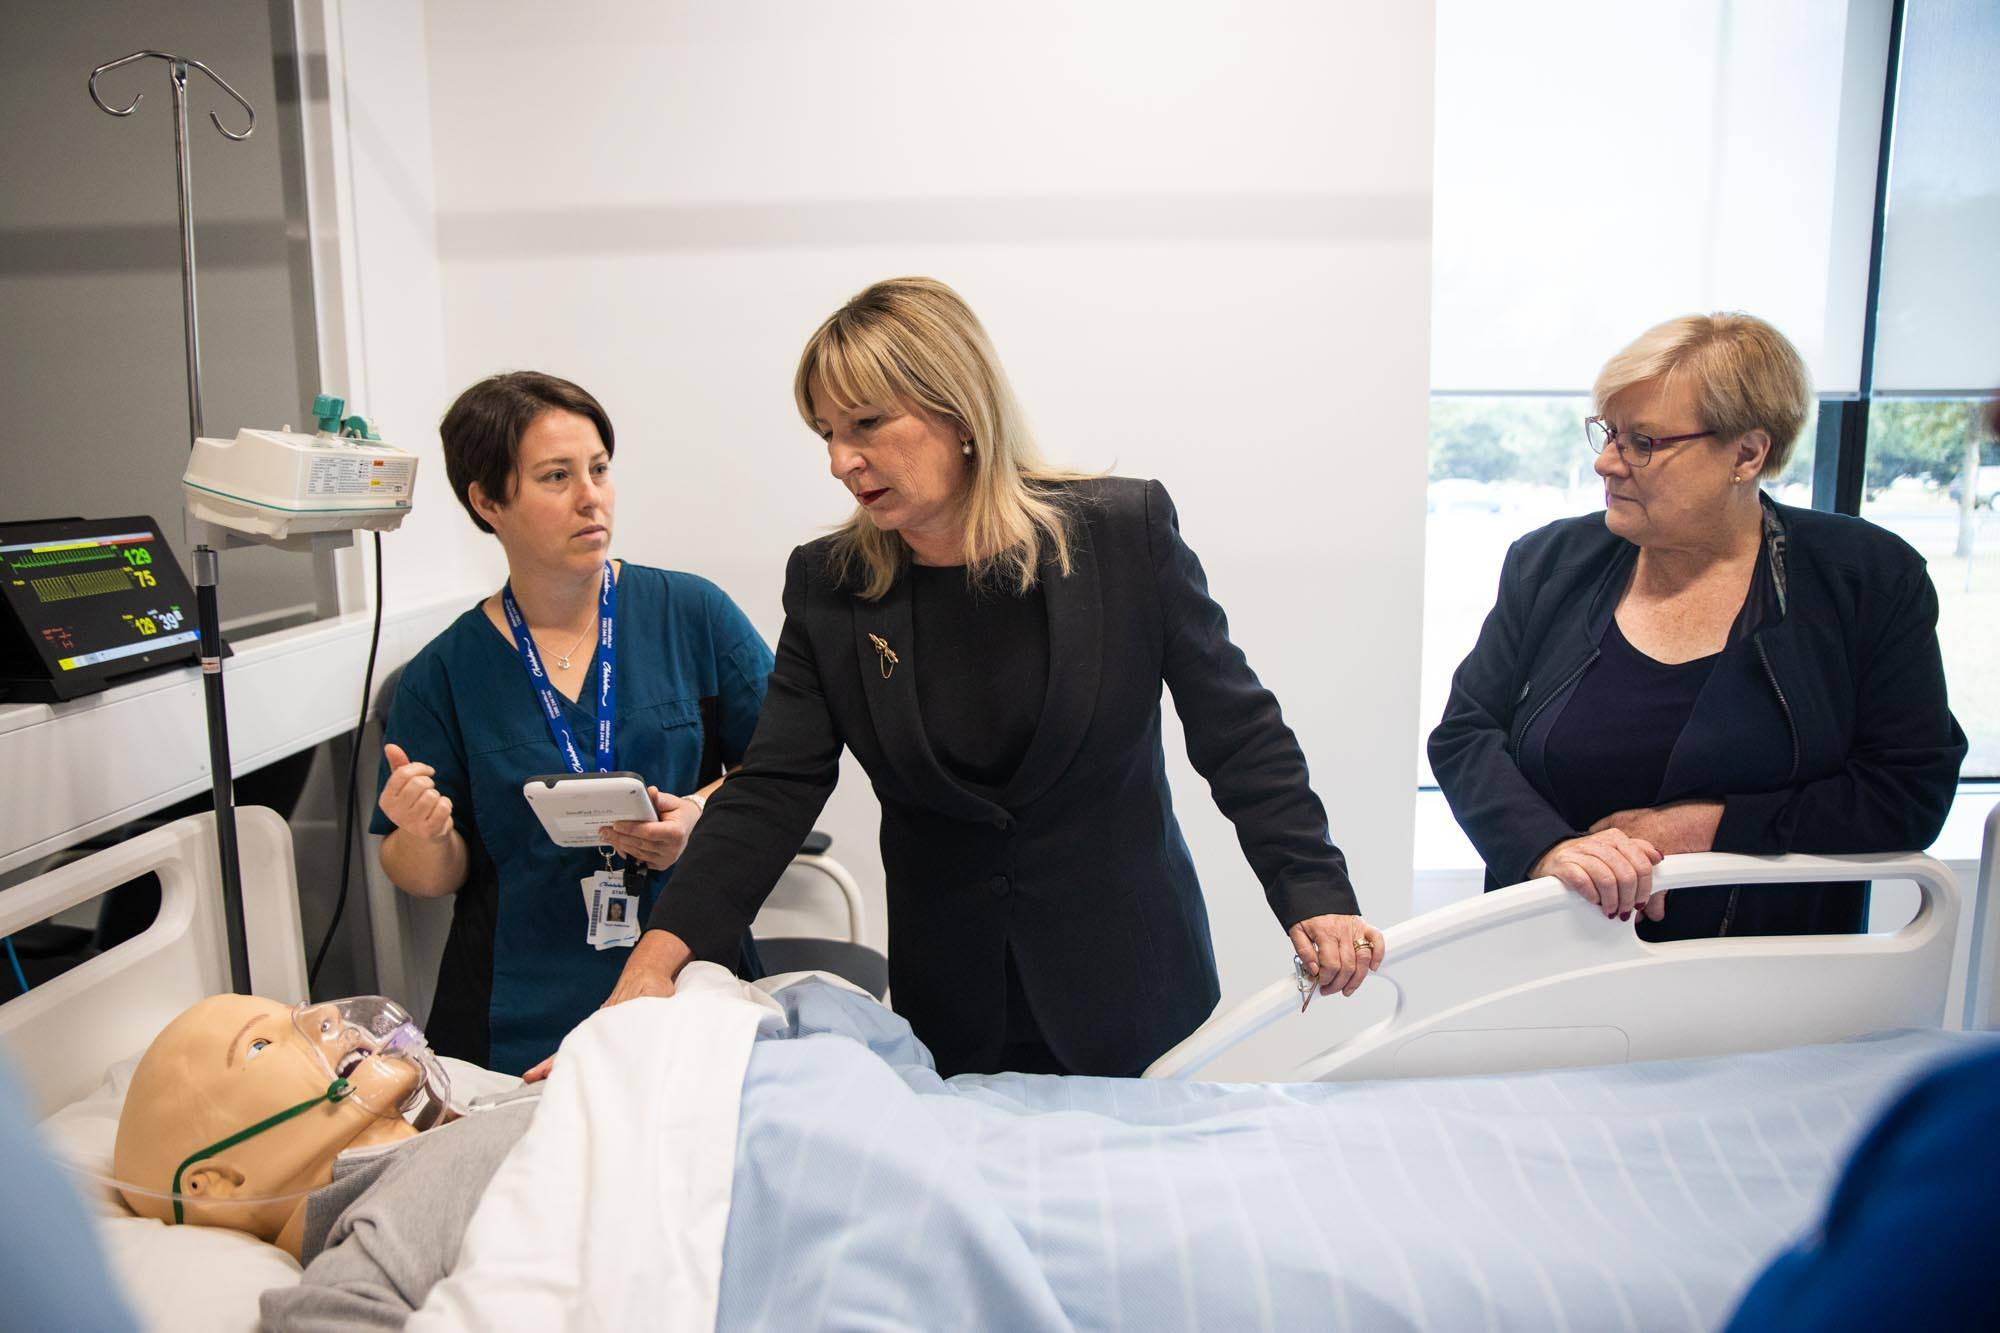 nursing and allied health professionals training with laerdal mannequin